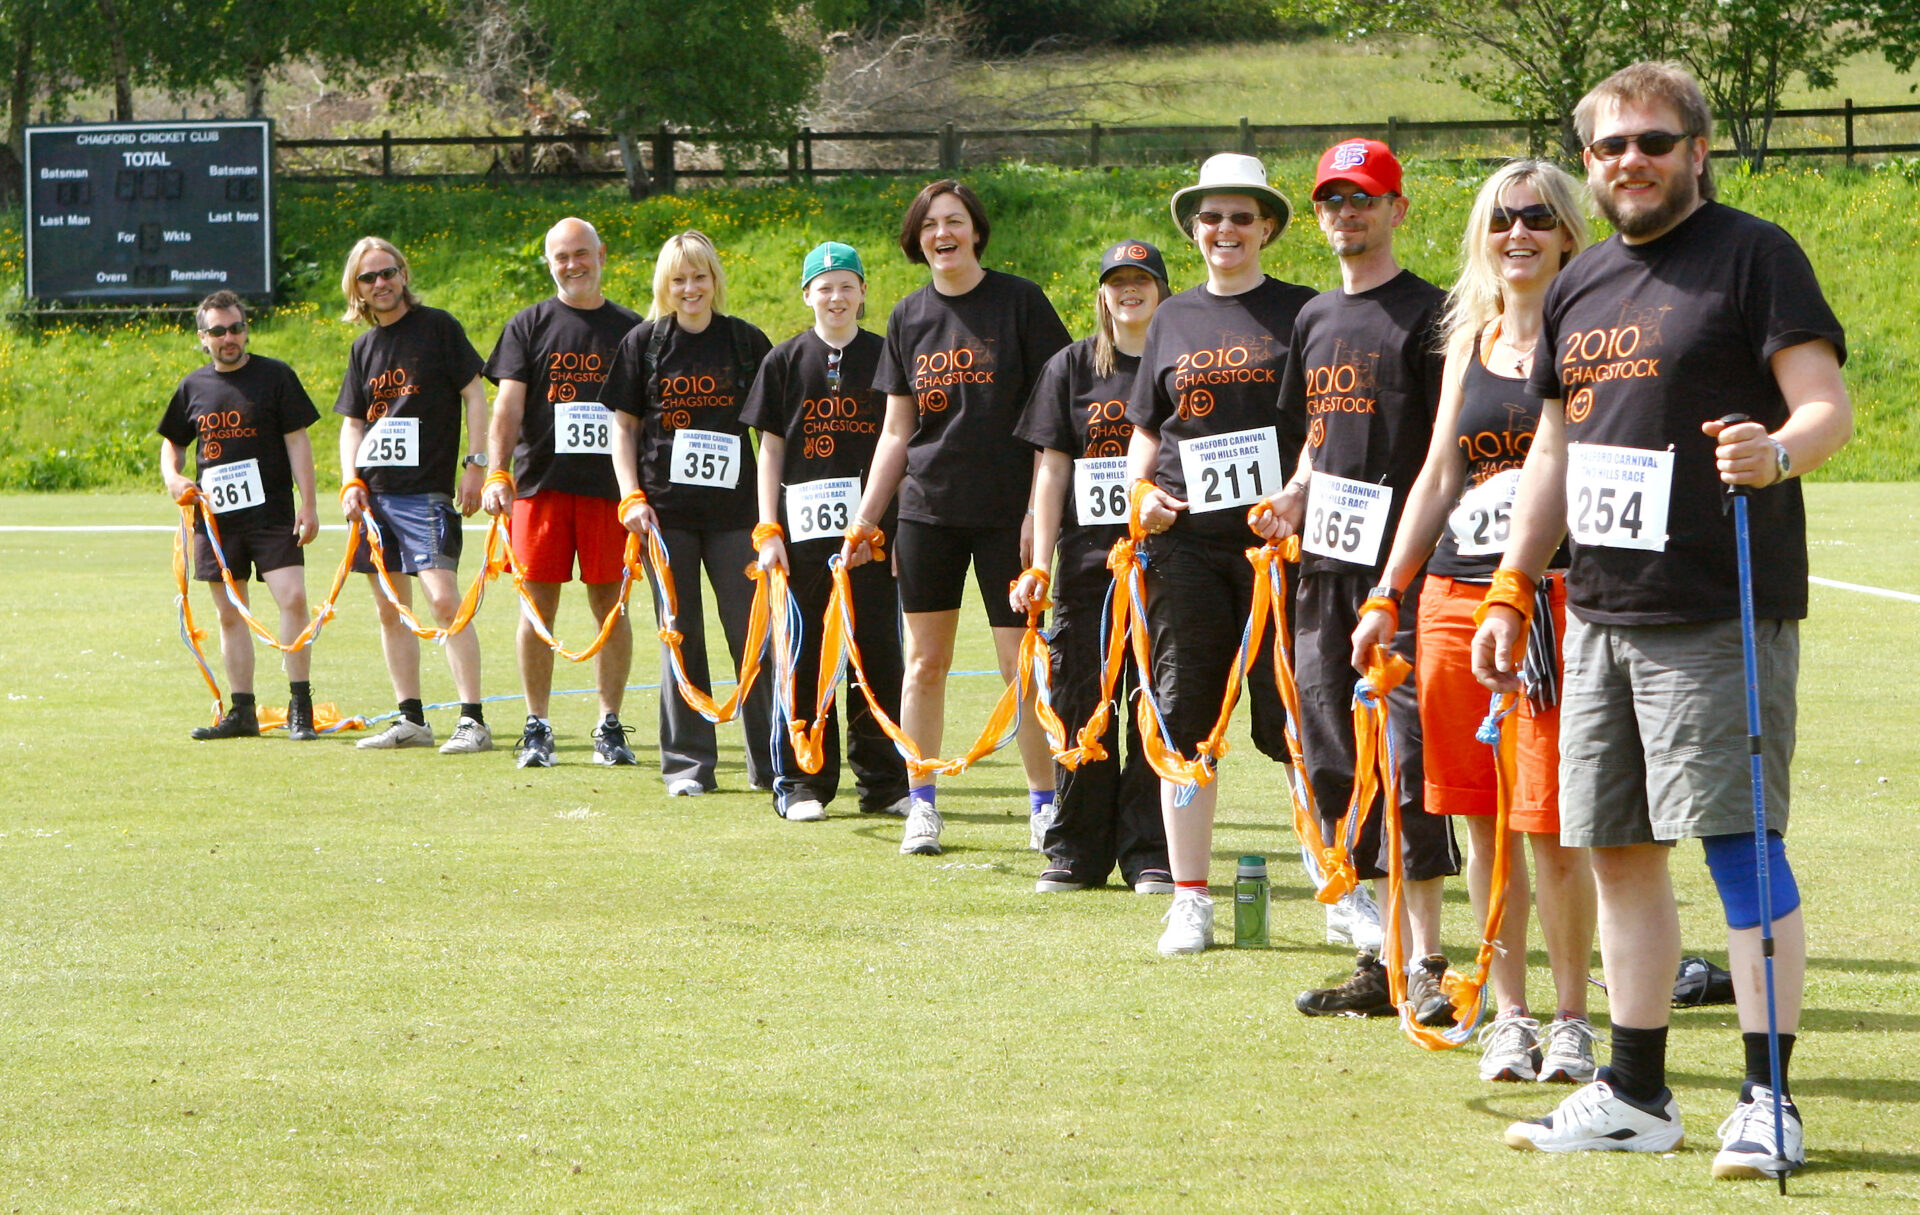 The Chagstock gang of hangers on - to the orange ribbon, that is !!